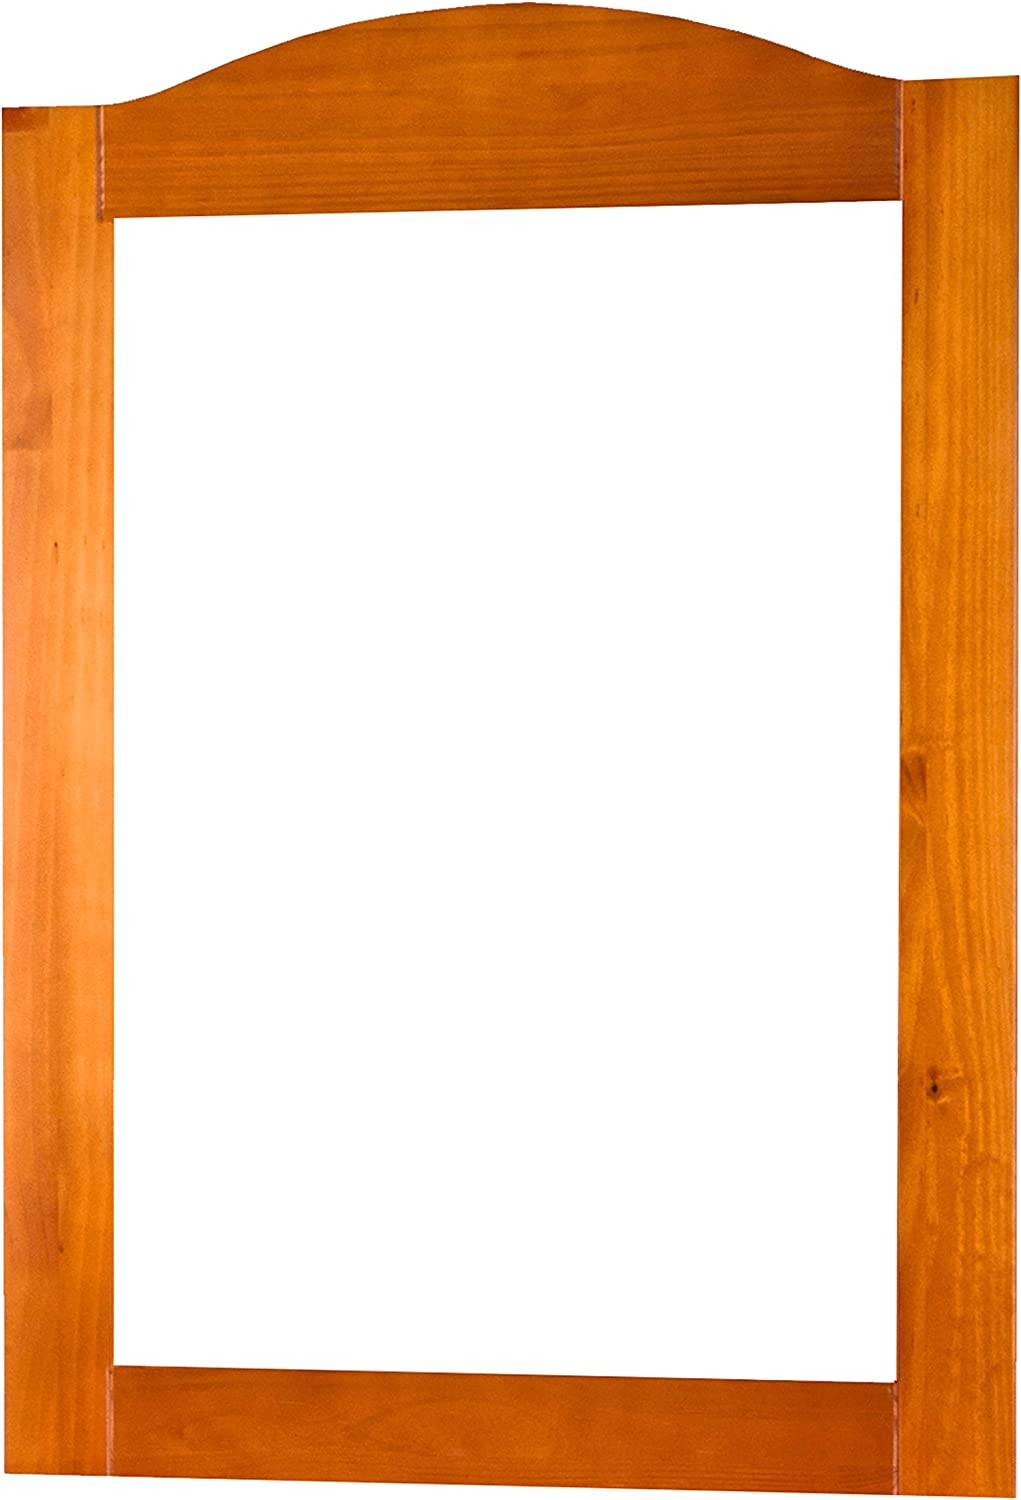 100% Solid Wood Frame Mirror, Honey Pine, 32w x 44.5h. 2 Mirror Supports, Hardware Included.